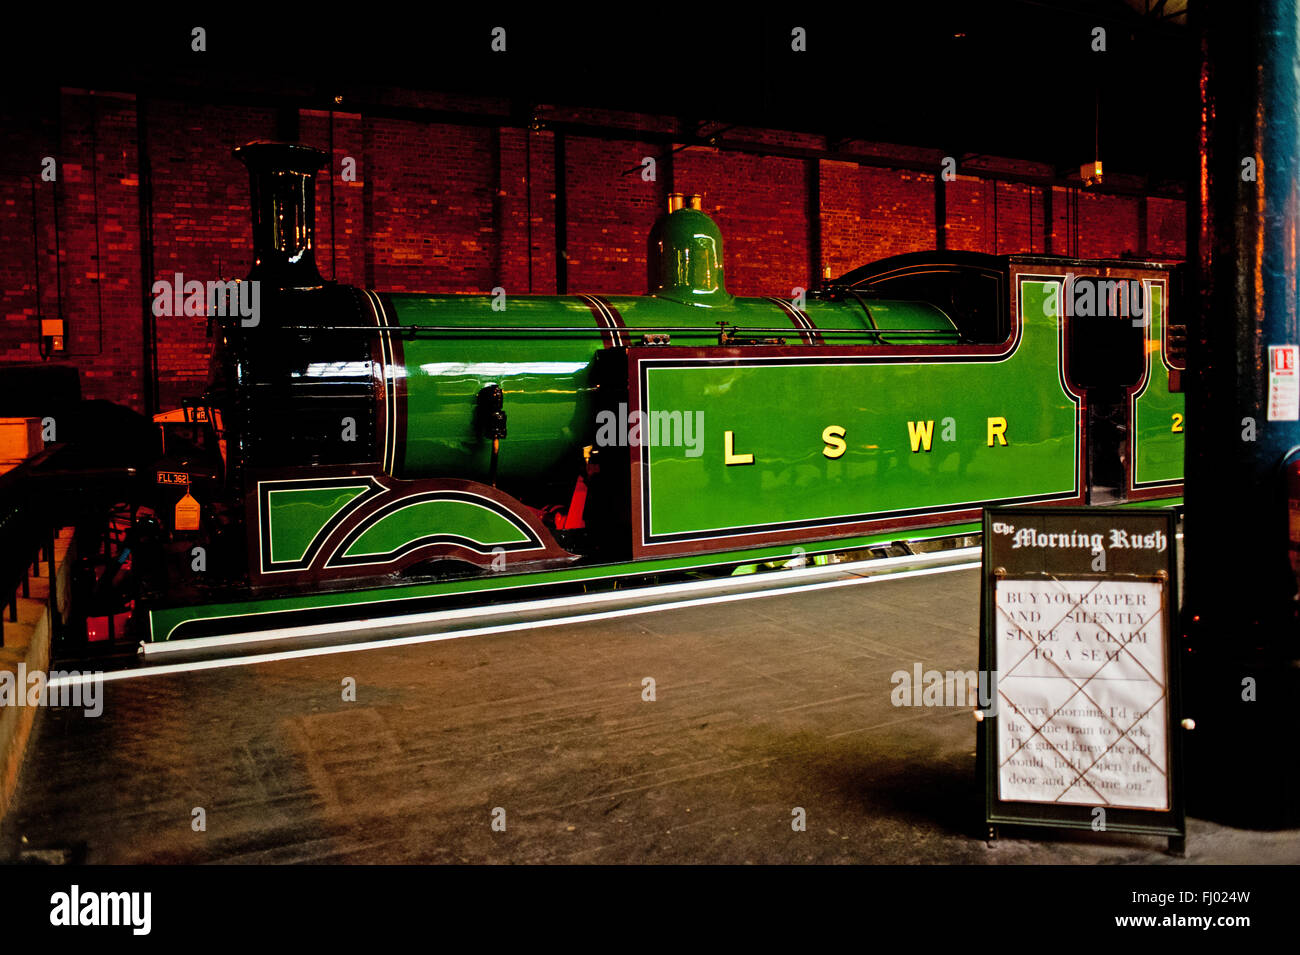 London and South Western Railway Class M7 Locomotive, National Railway Museum, York - Stock Image